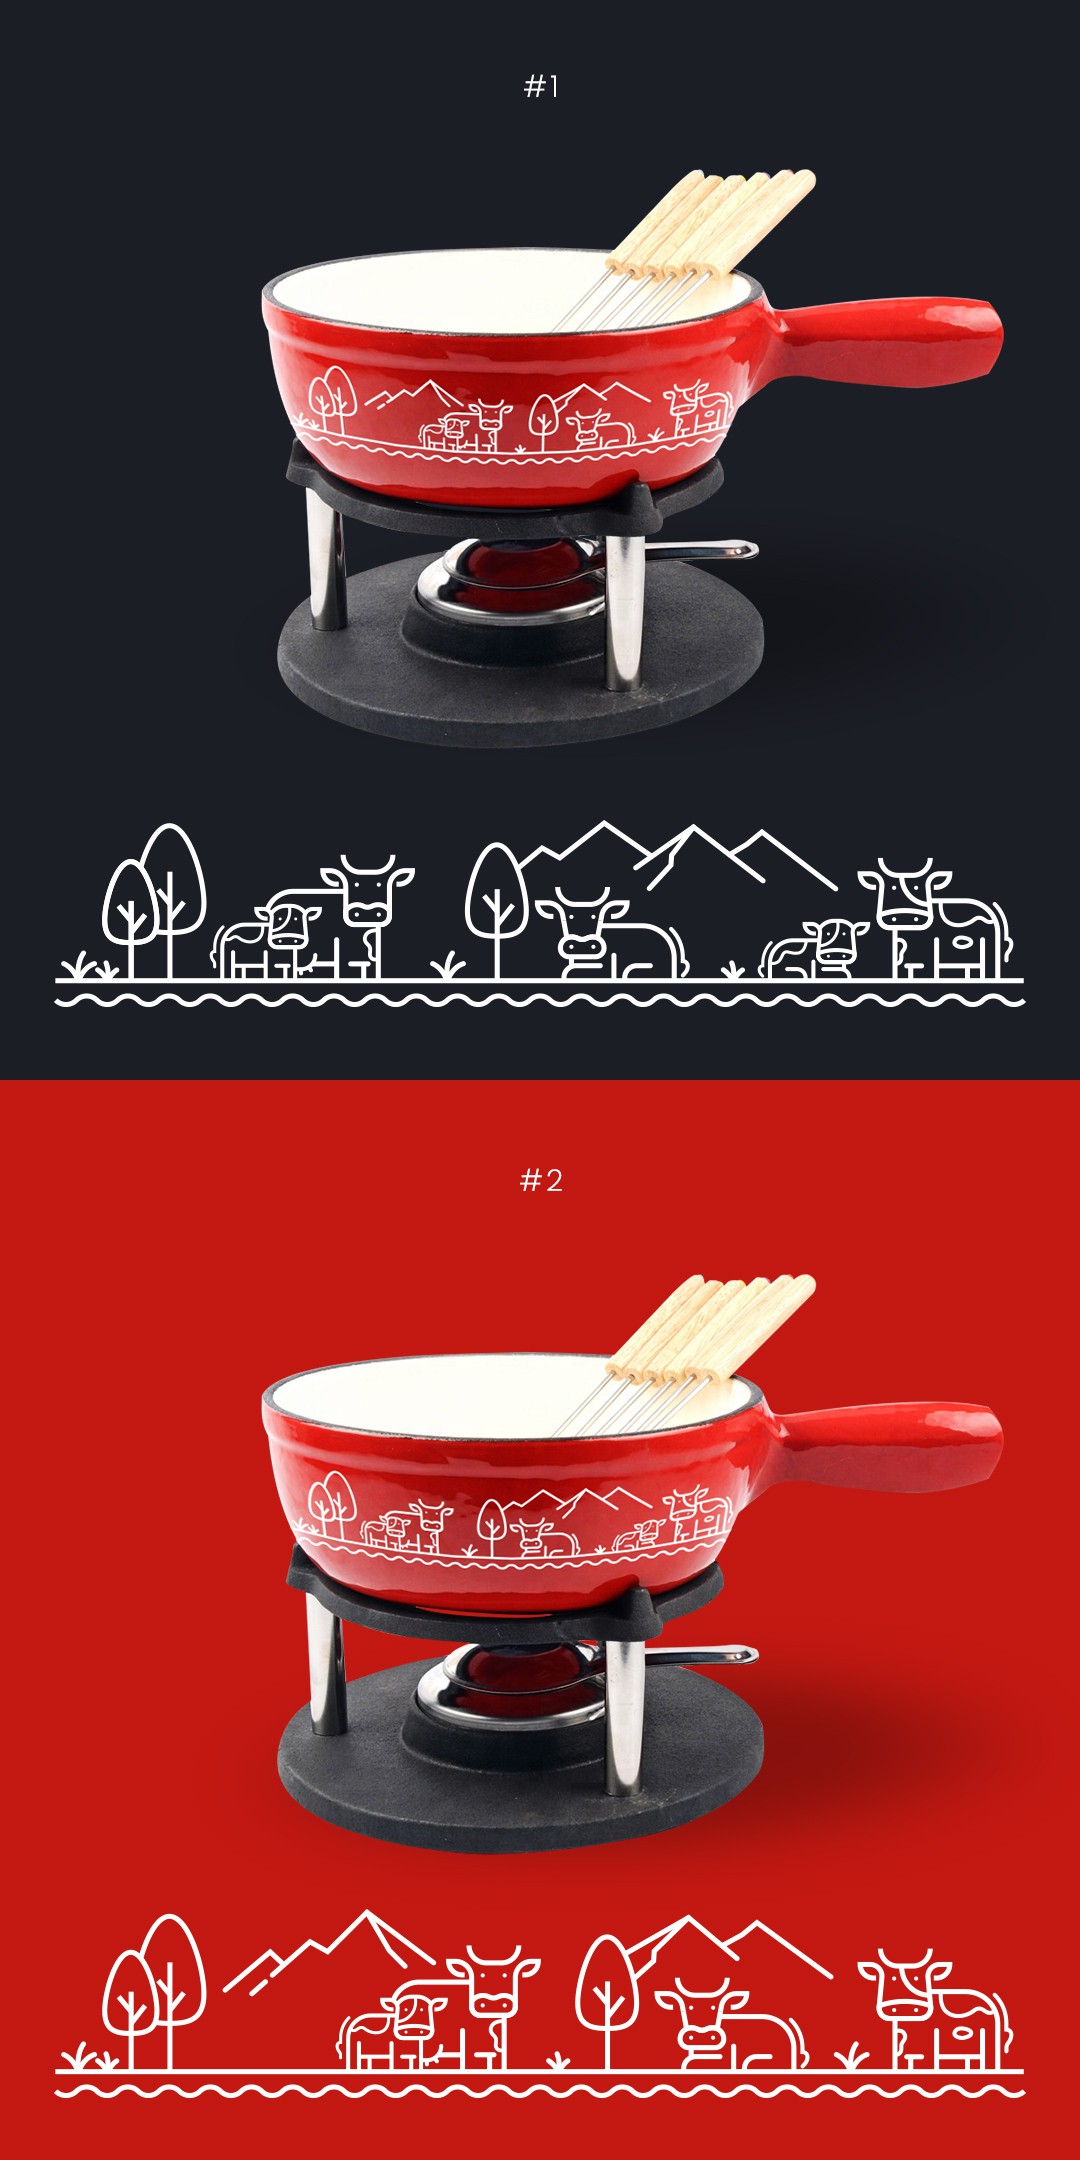 Mooo!! Elevate a normal cookware with a classy, sophisticated and clean cow design!